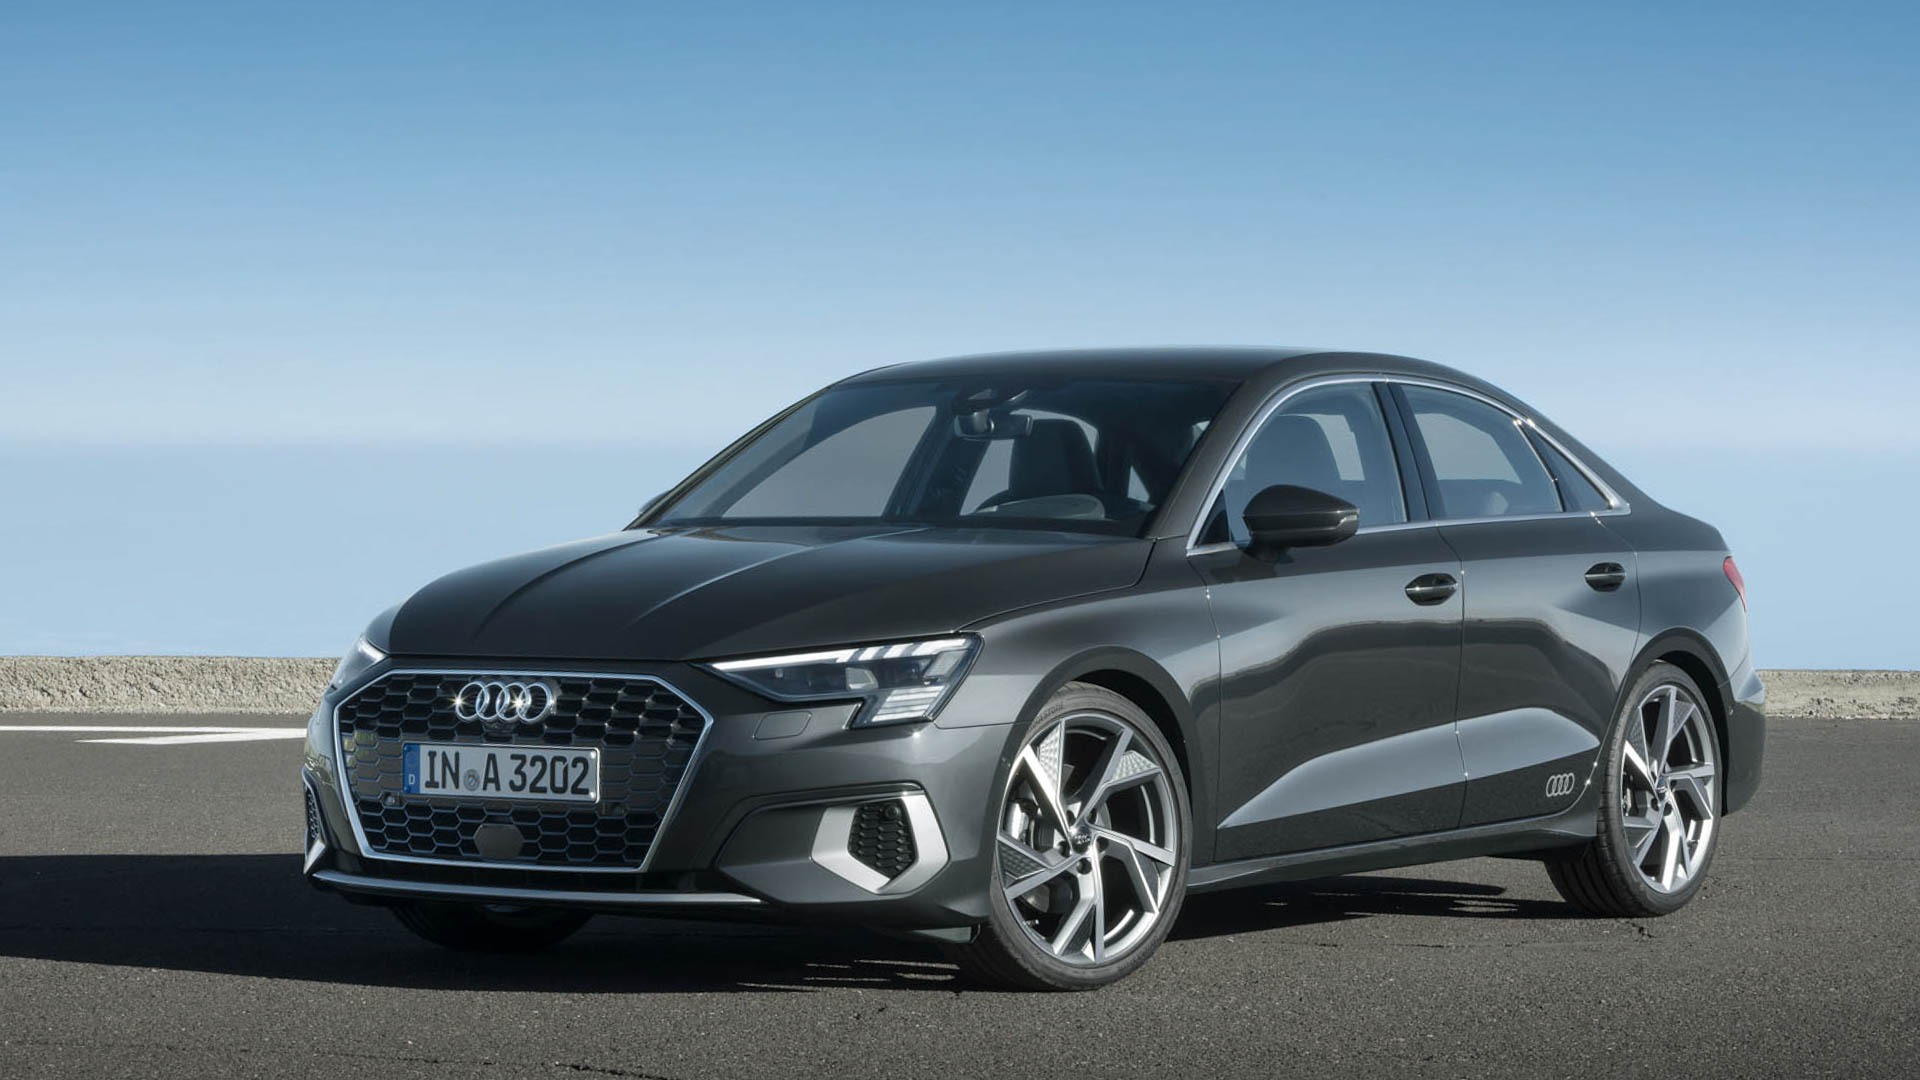 2020 Audi A3 Sedan vs BMW 2 Series Gran Coupe 13